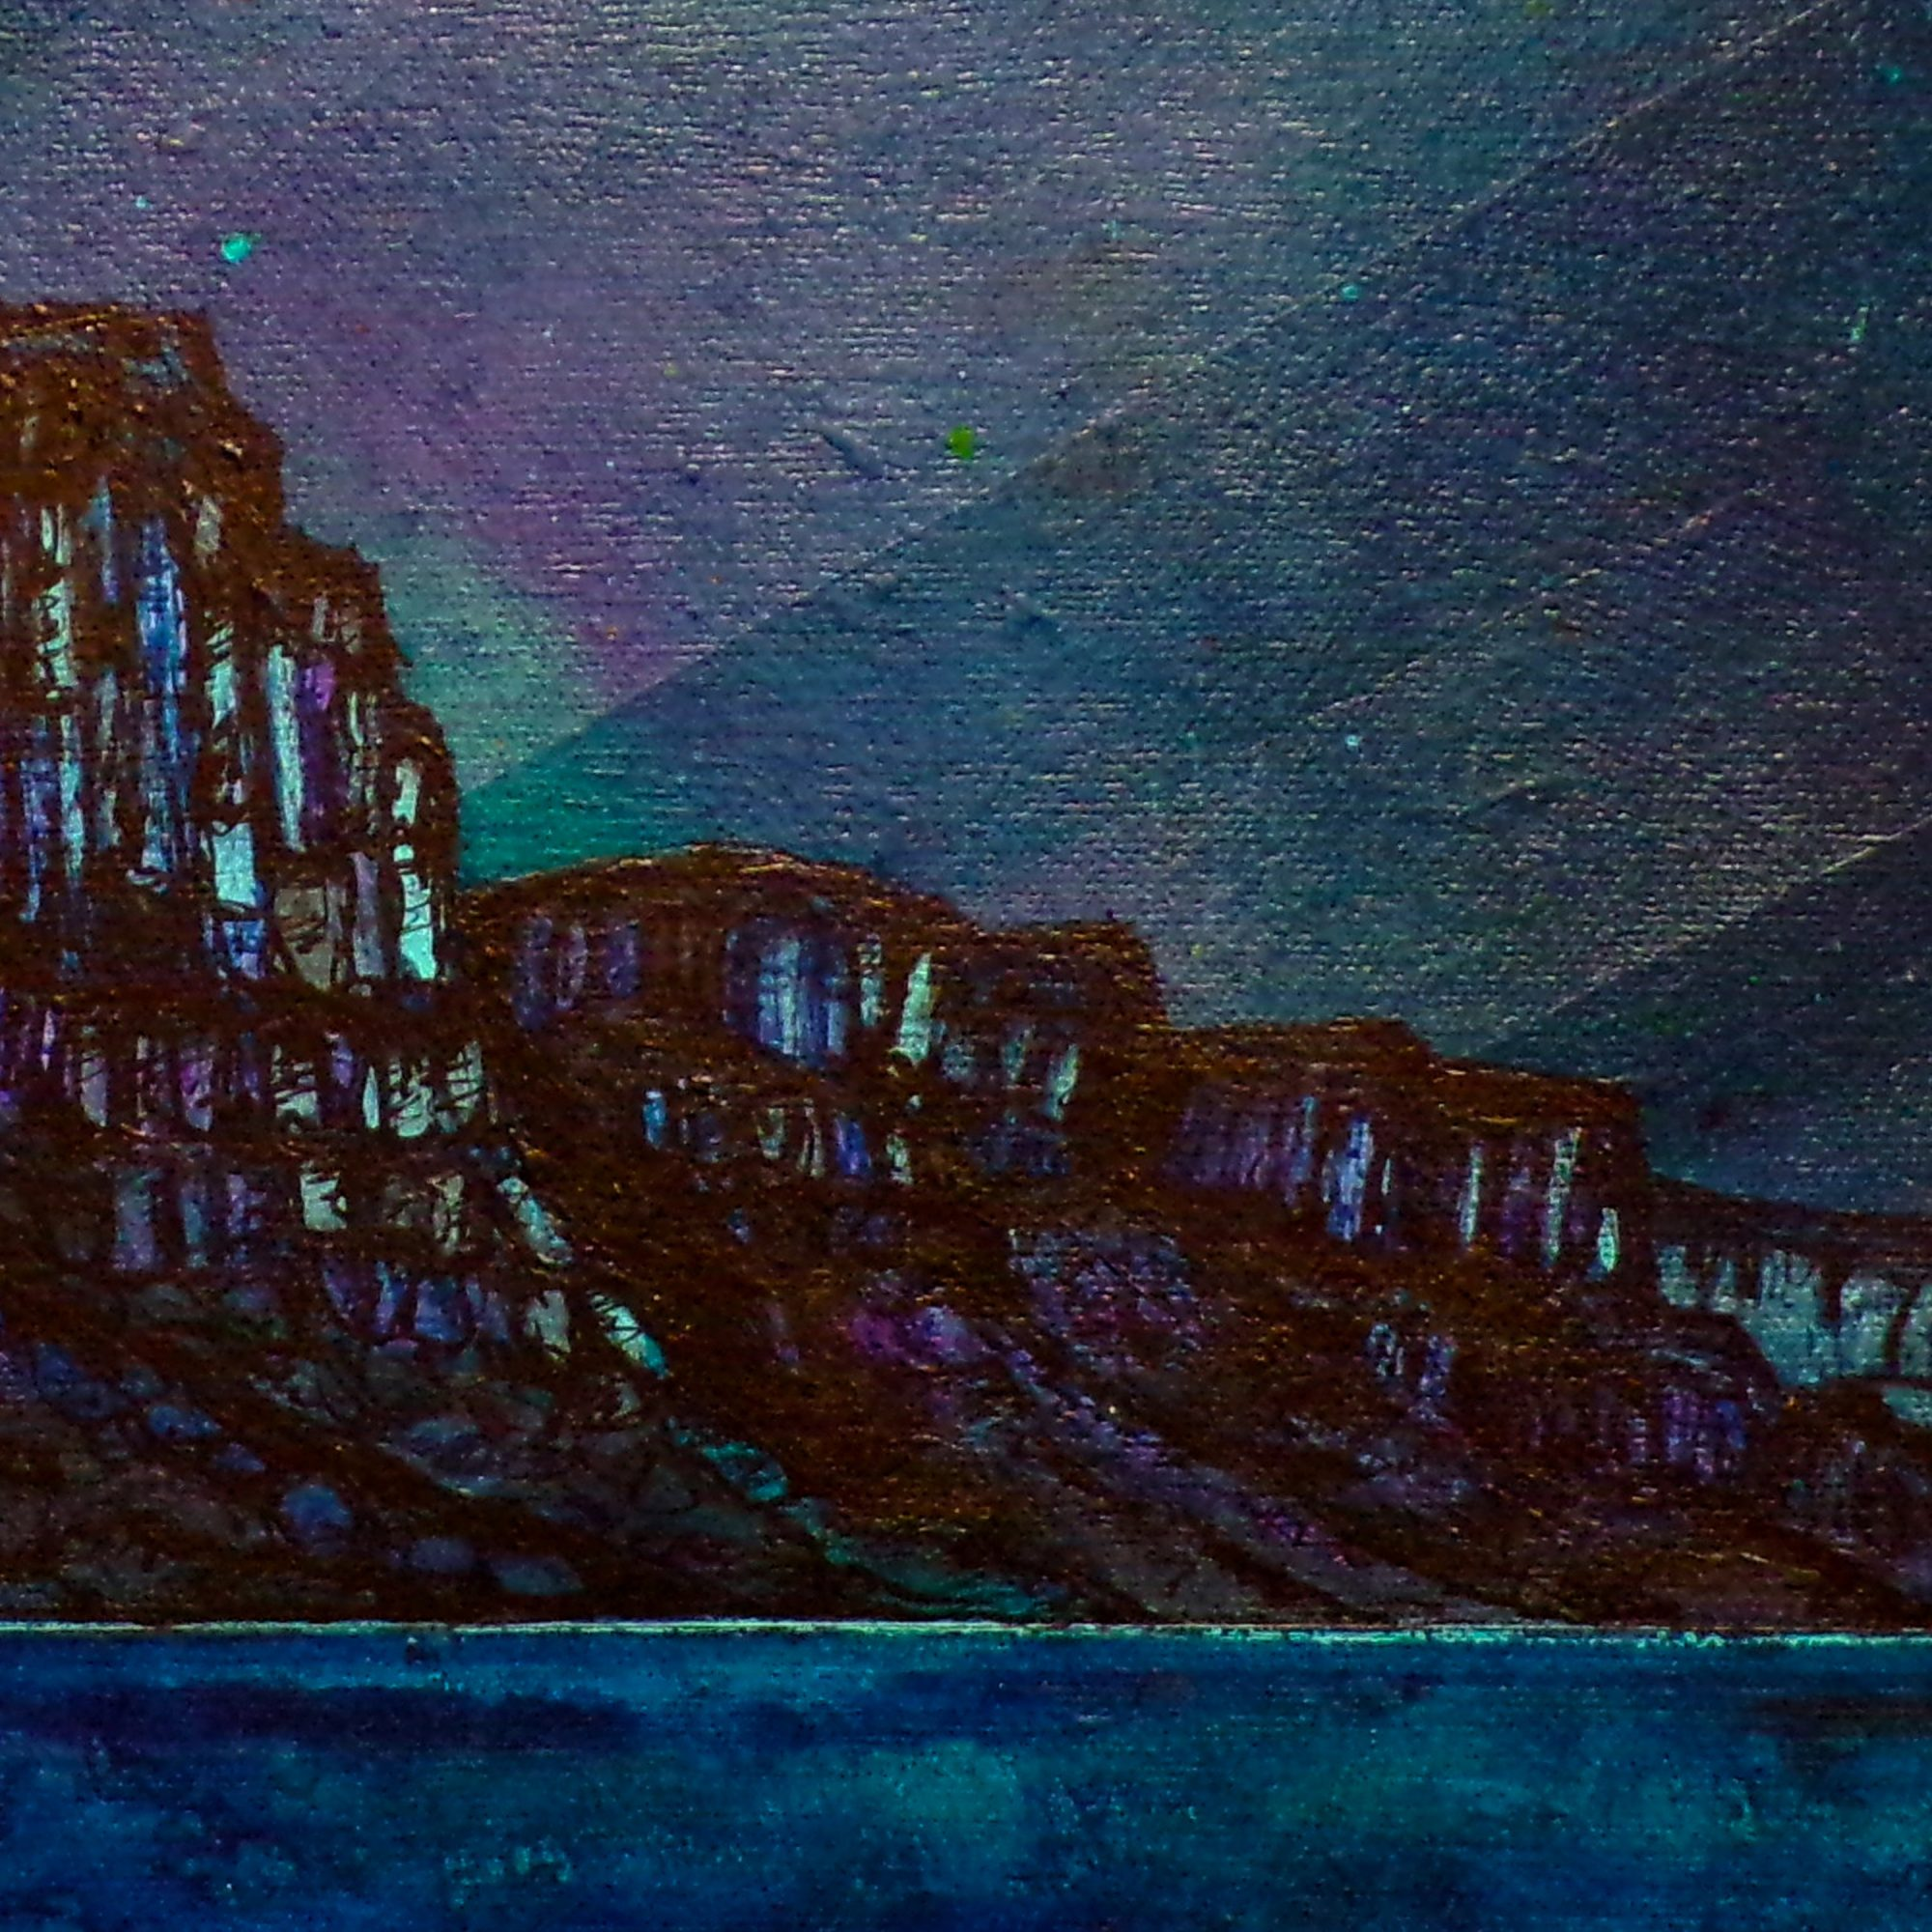 Kilt Rock, Skye - Seascape Painting by Scottish artist A Peutherer - Closeup